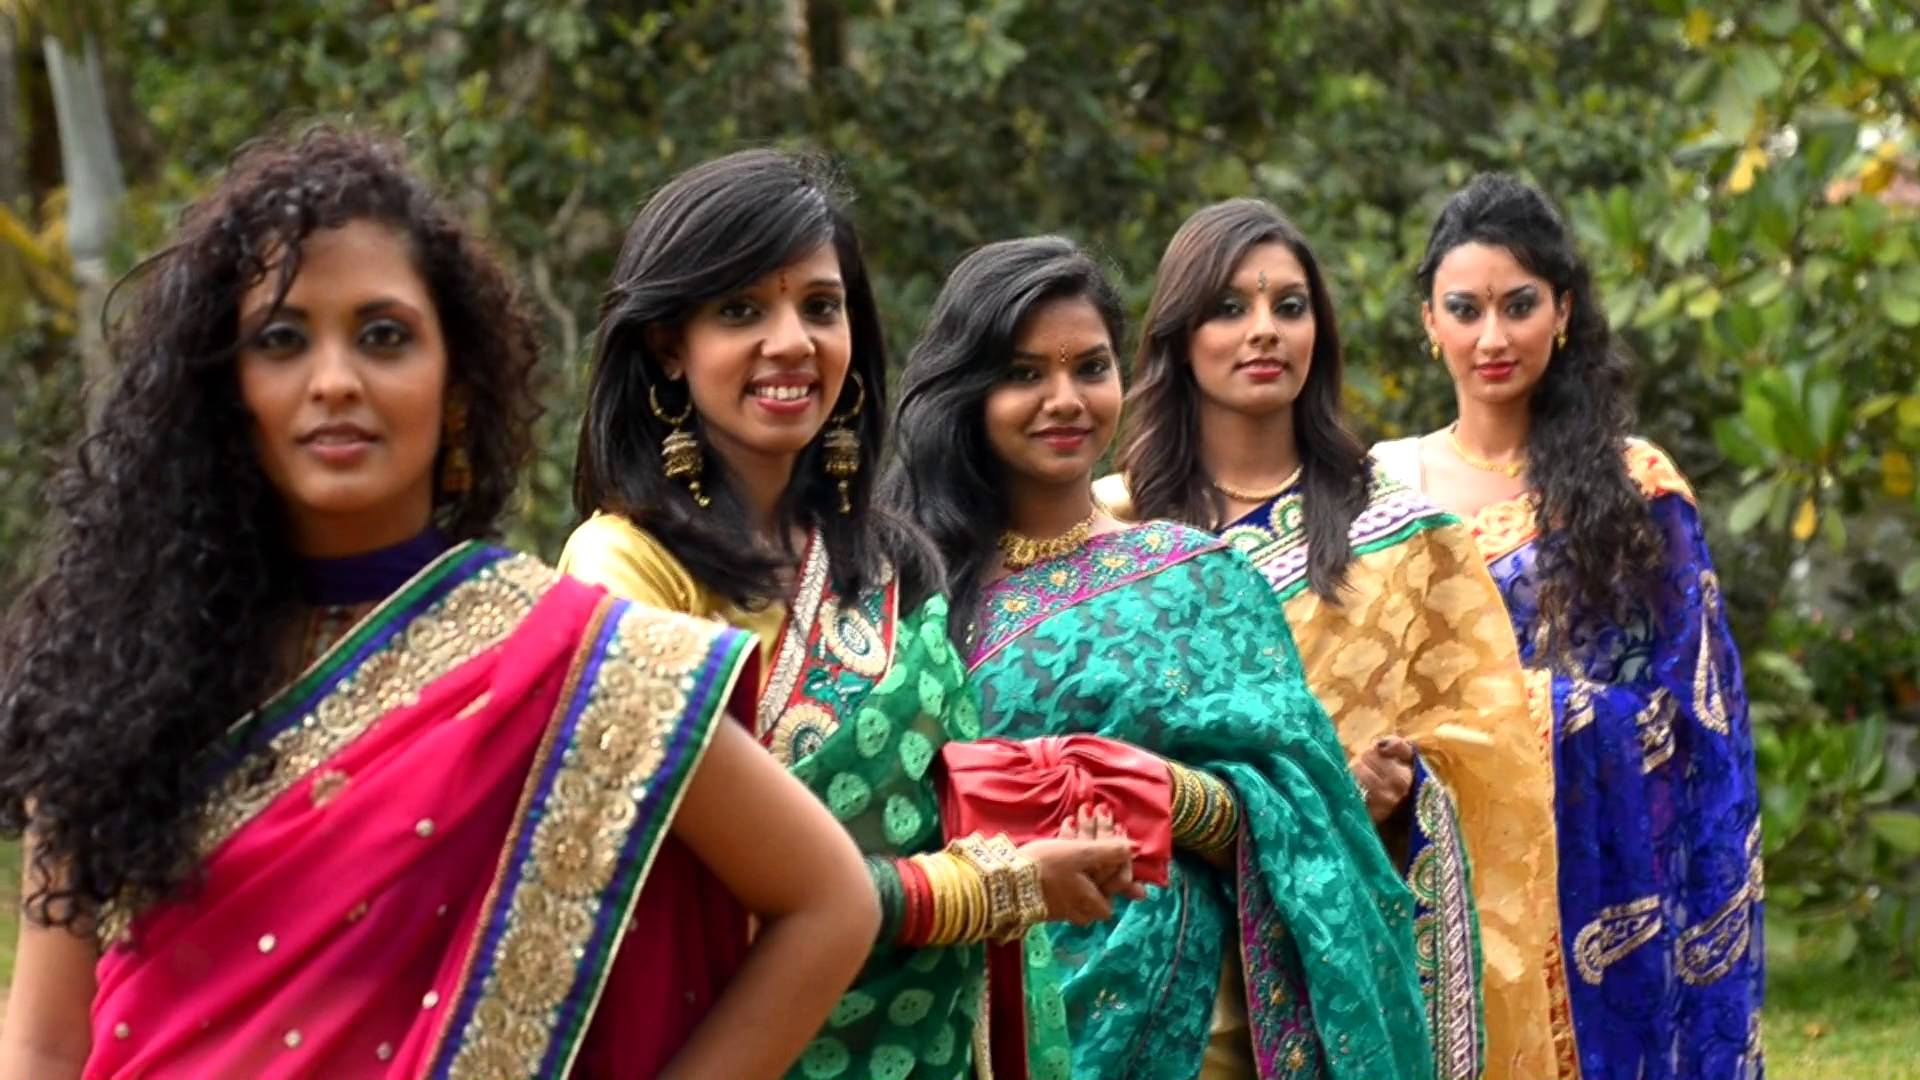 Mauritian ladies saree